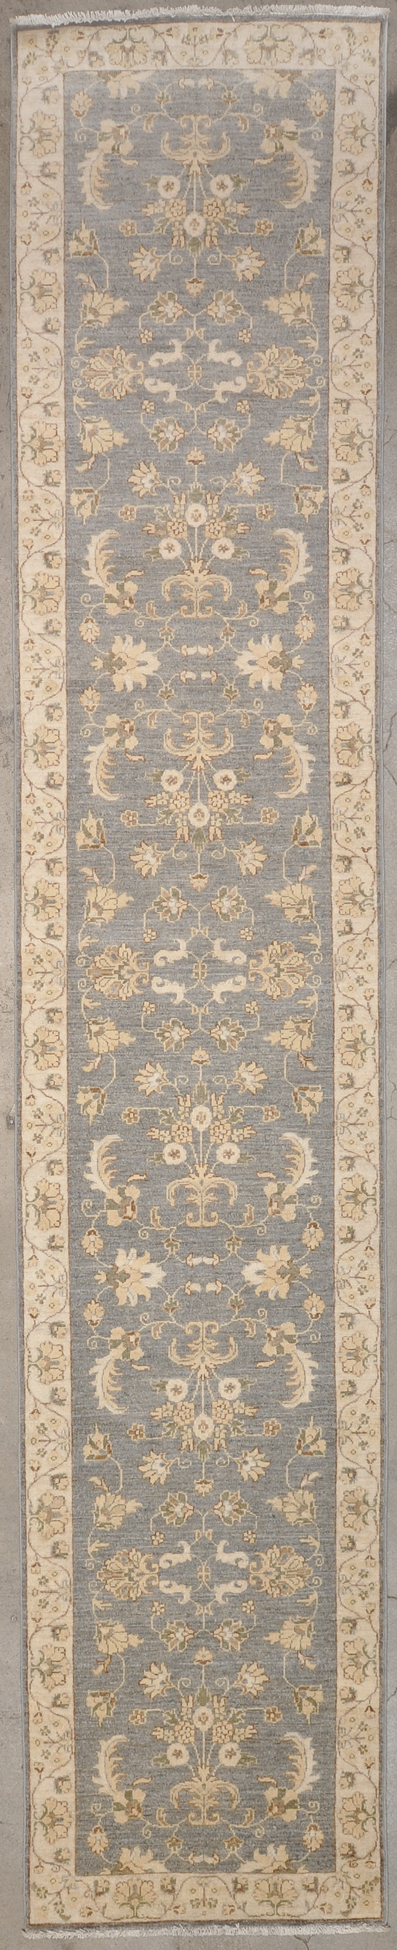 Ziegler & Co Oushak rugs and more oriental carpet 34111-1